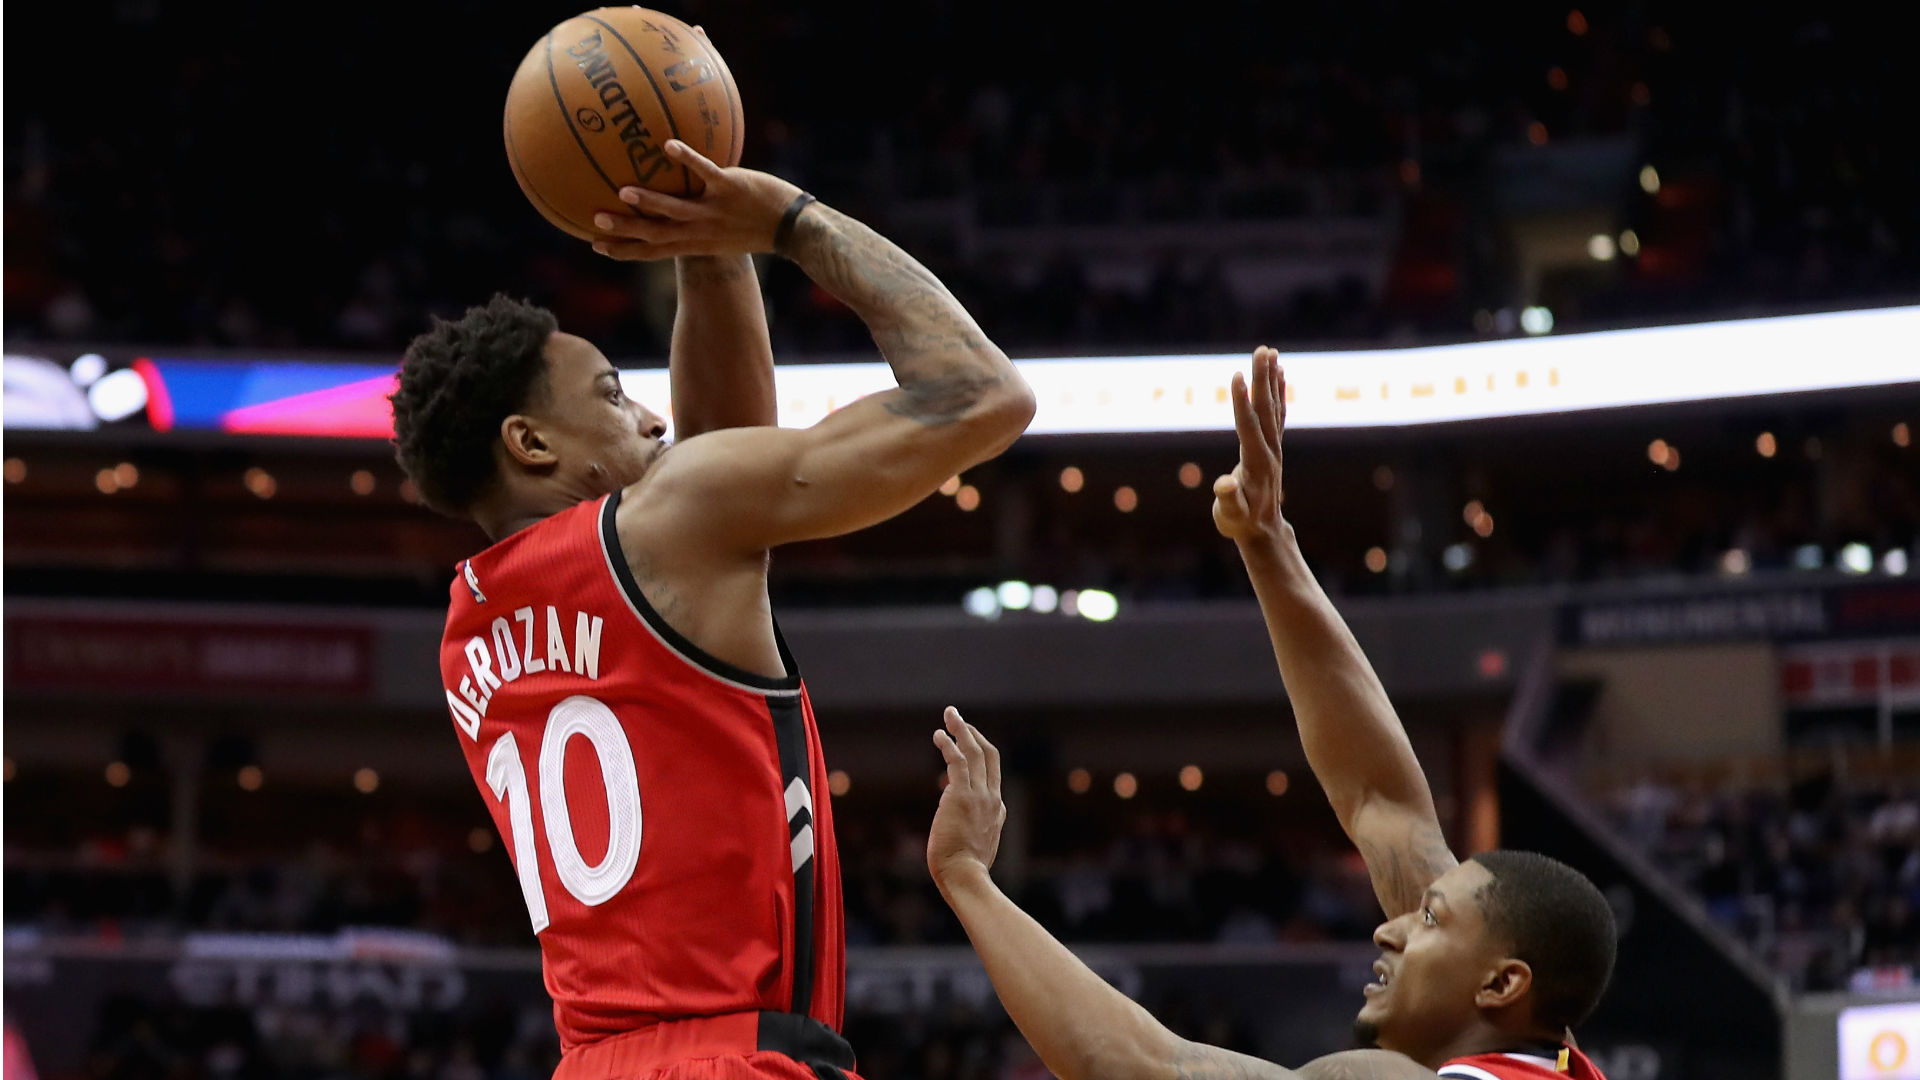 Nba Playoffs  Where When How To Watch Raptors Vs Wizards First Round Series